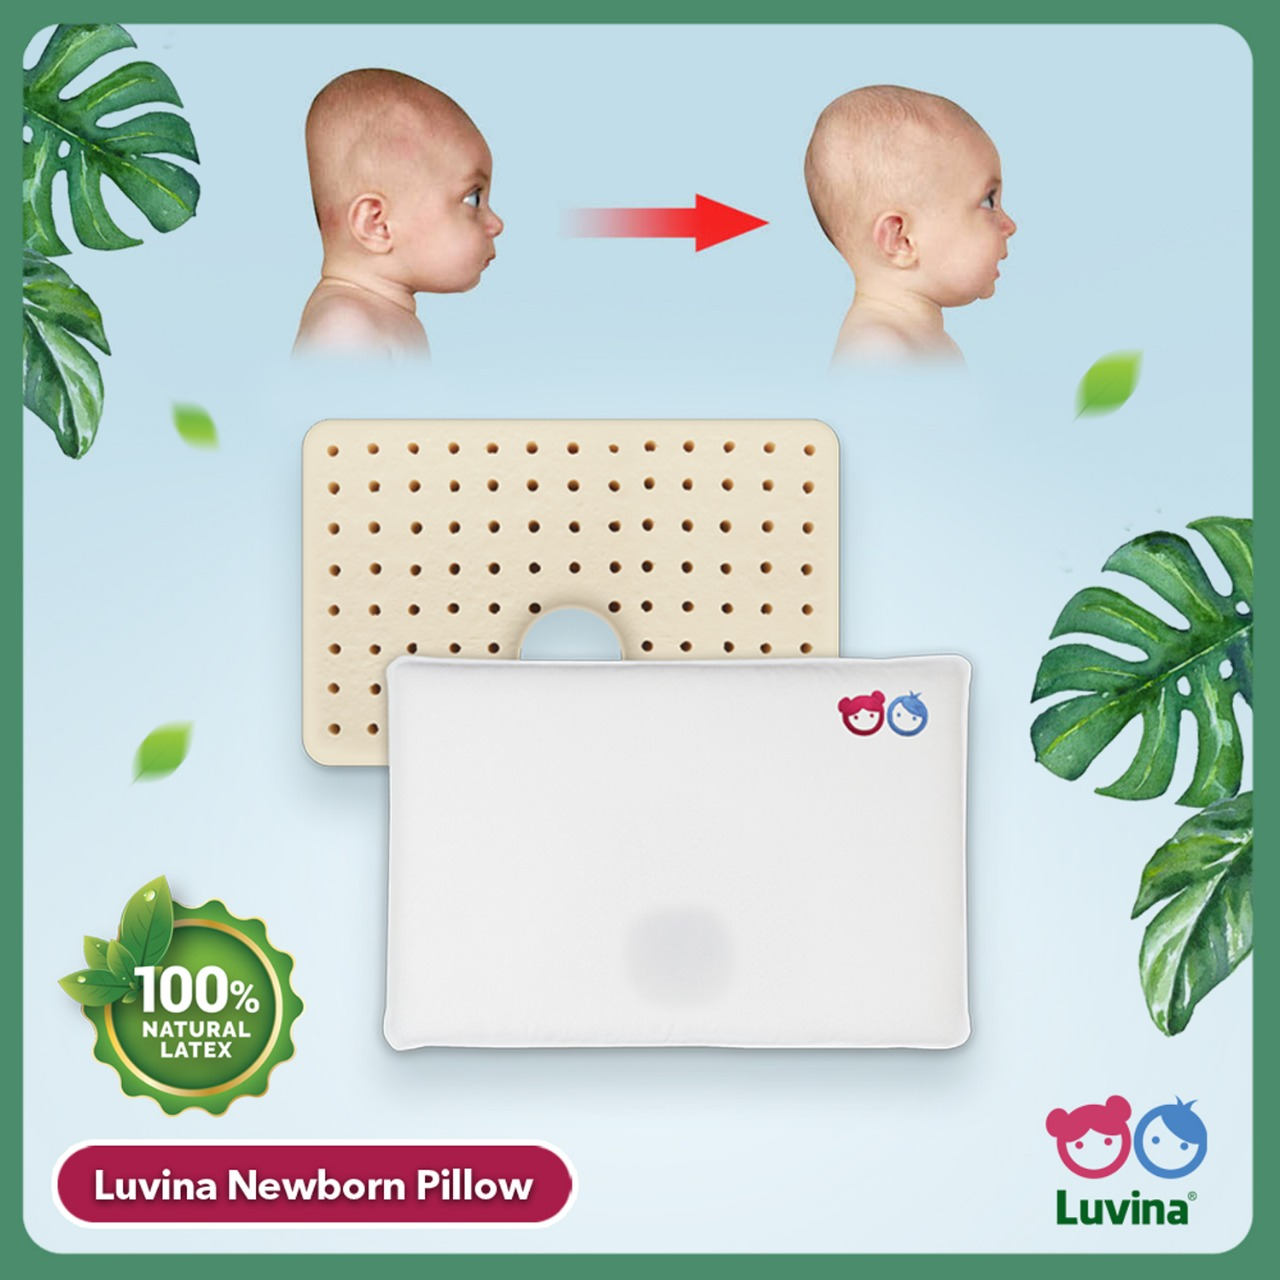 BANTAL ANTI PEYANG LUVINA NEWBORN PILLOW BANTAL LATEX BAYI BUKAN BABYBEE BUKAN DOOGLEE JAN ETHES KEPALA PEYANG LUVINA NEWBORN PILLOW NATURAL LATEX PLAGIOCEPHALY POSISI TIDUR